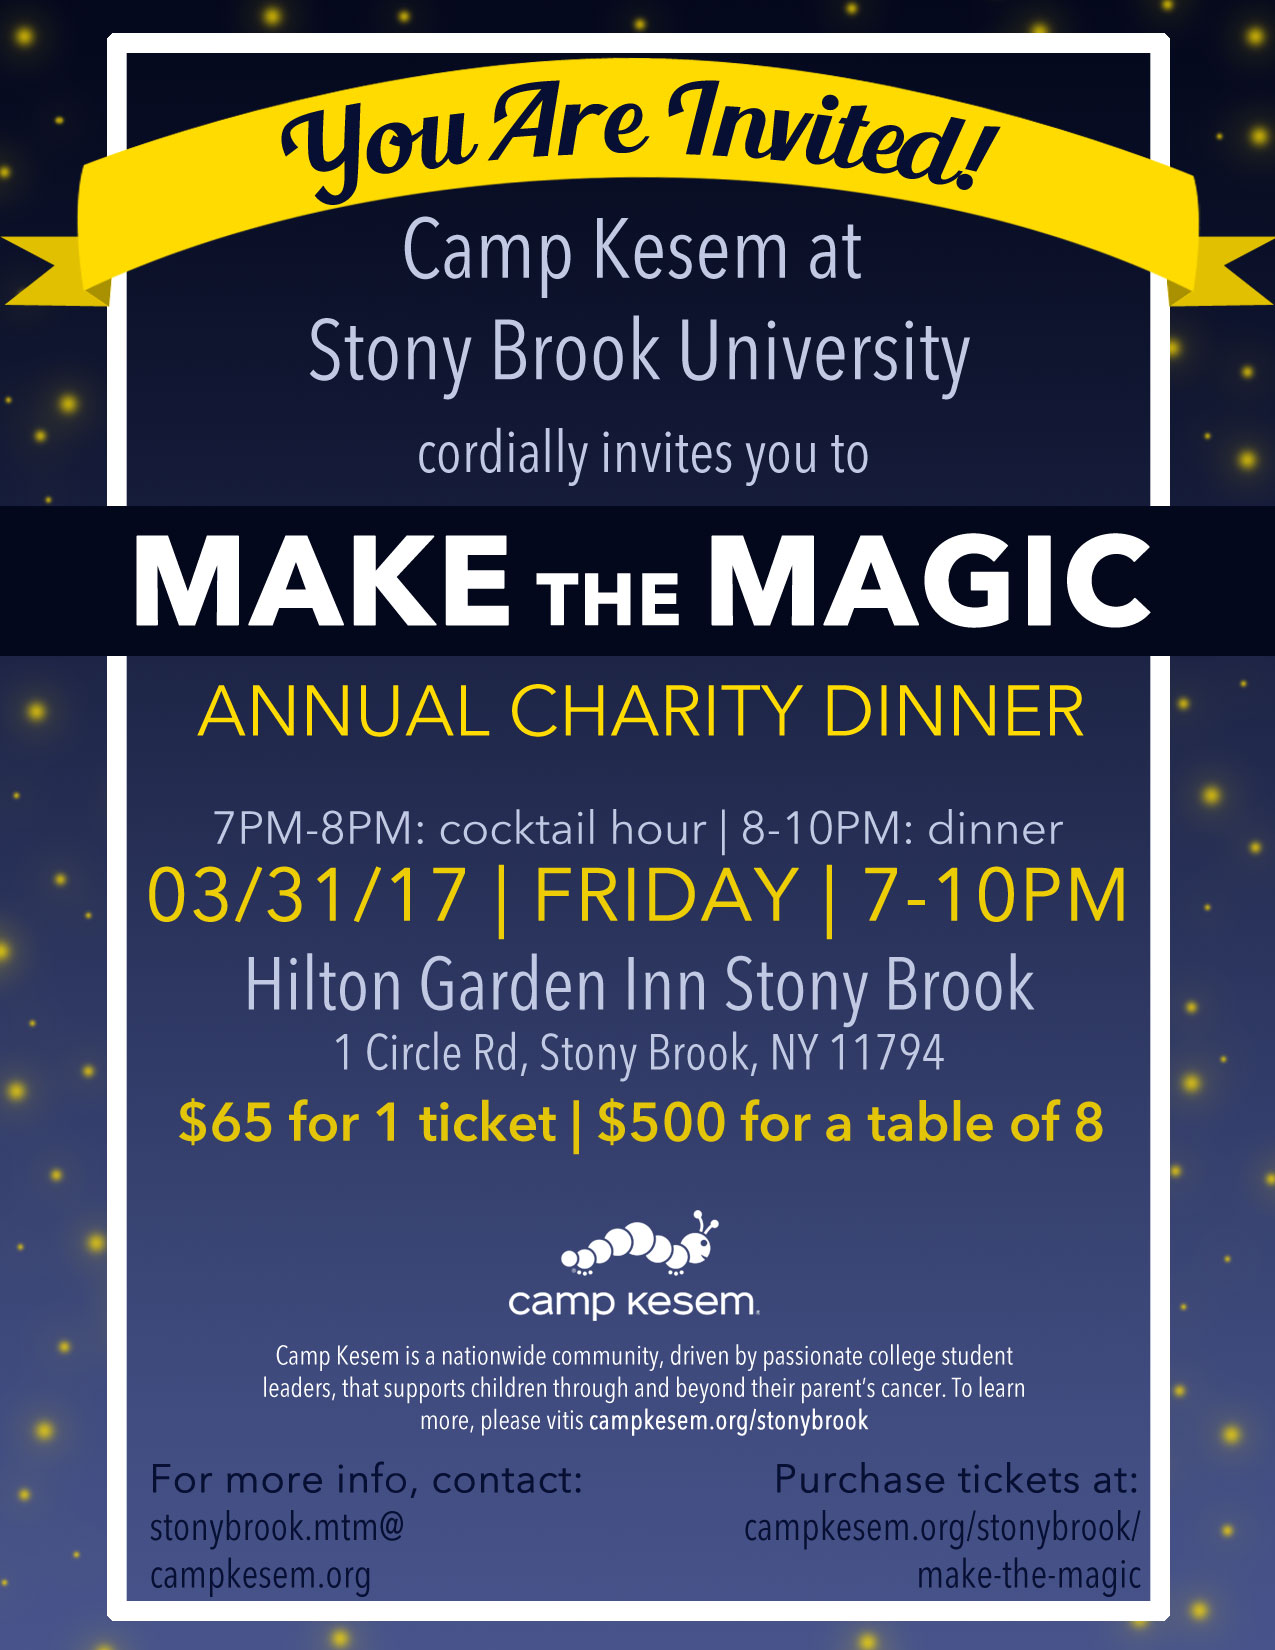 Camp Kesem at Stony Brook University cordially invites you to Make the Magic Annual Charity Dinner